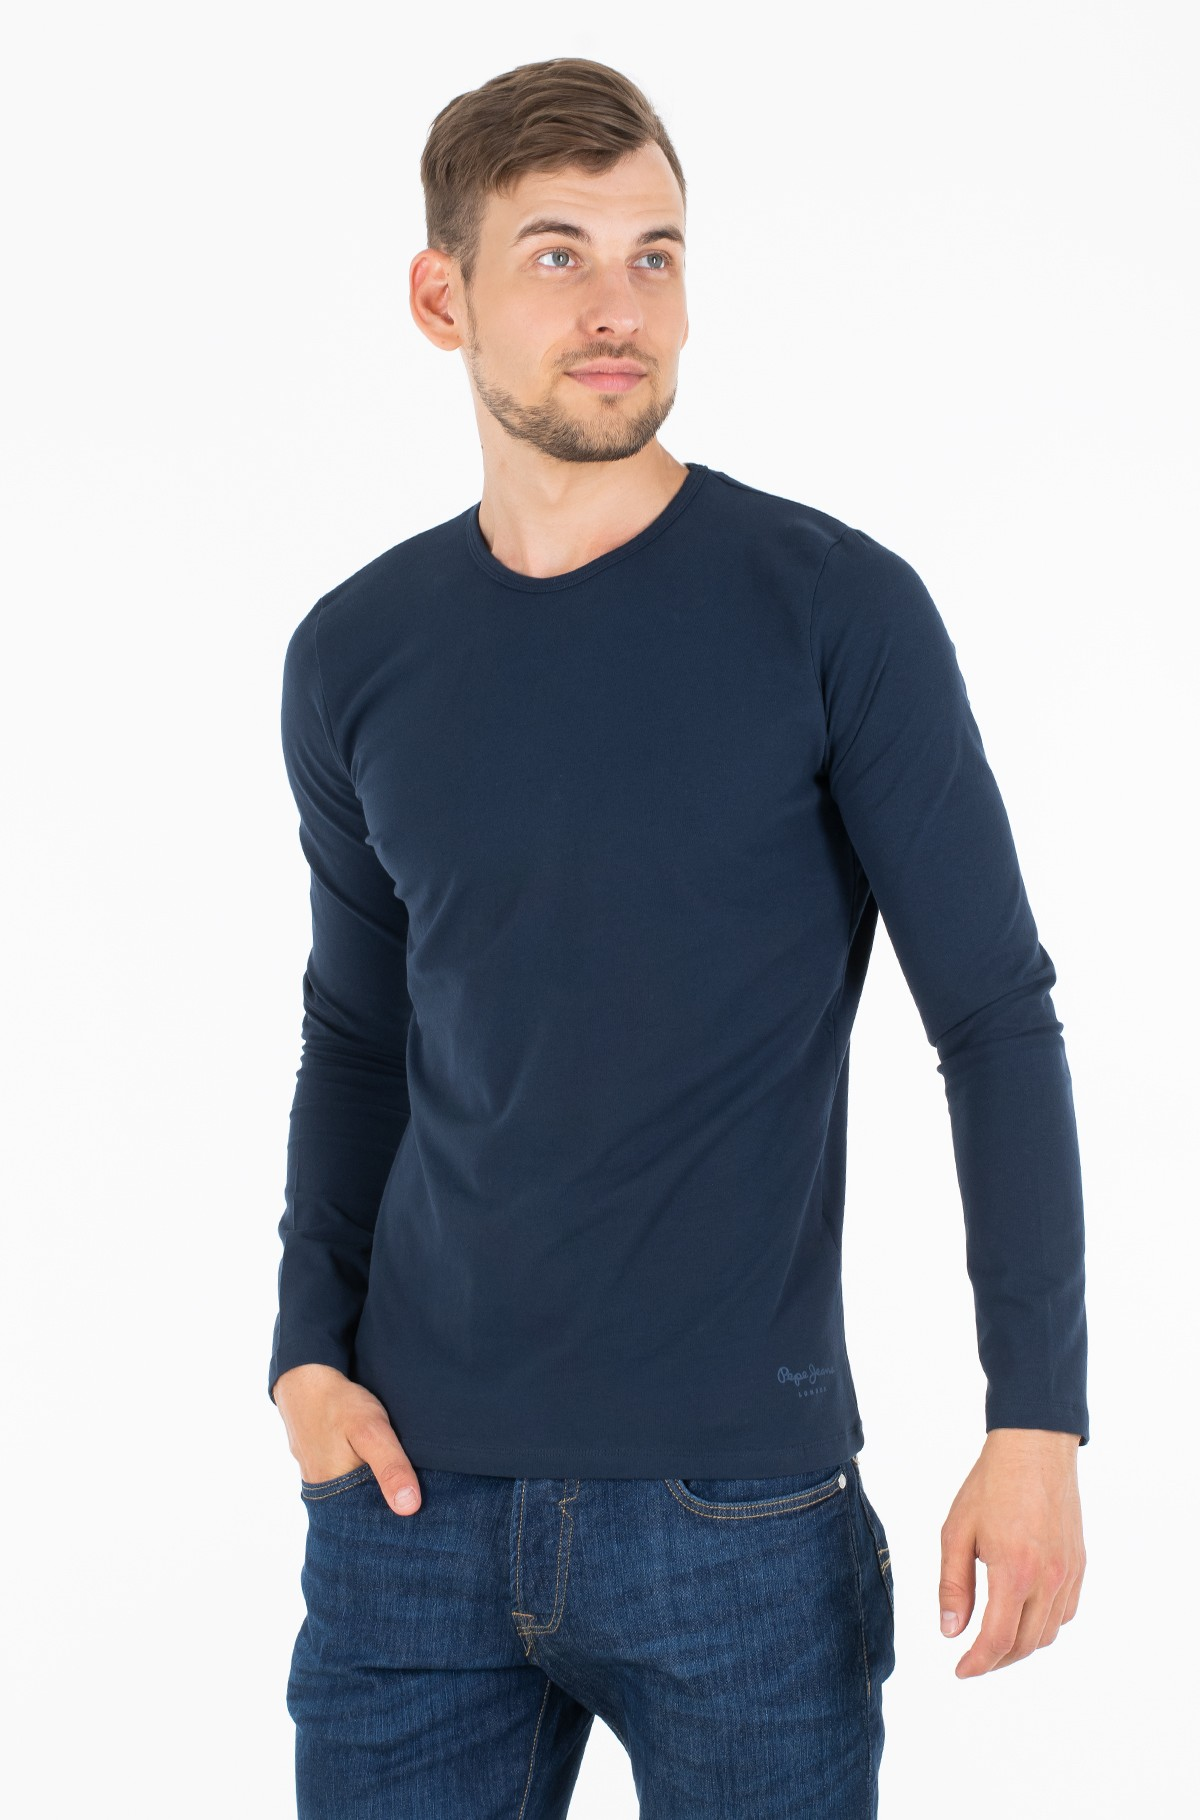 Long sleeved t-shirt ORIGINAL BASIC L/S/PM503803	-full-1